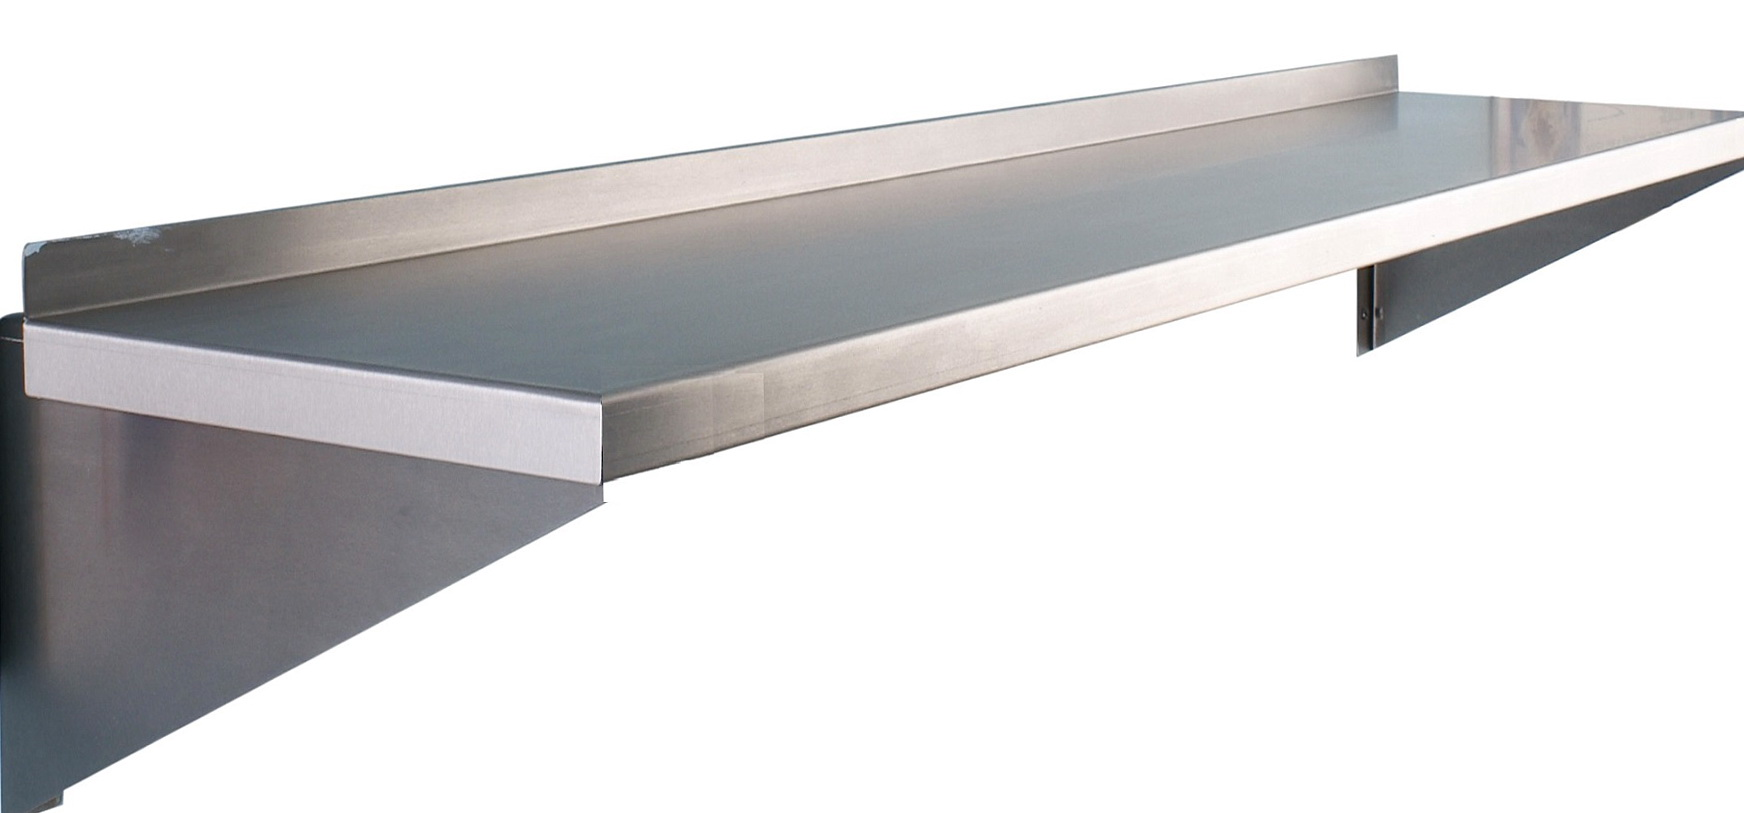 Stainless Steel Kitchen Wall Shelf